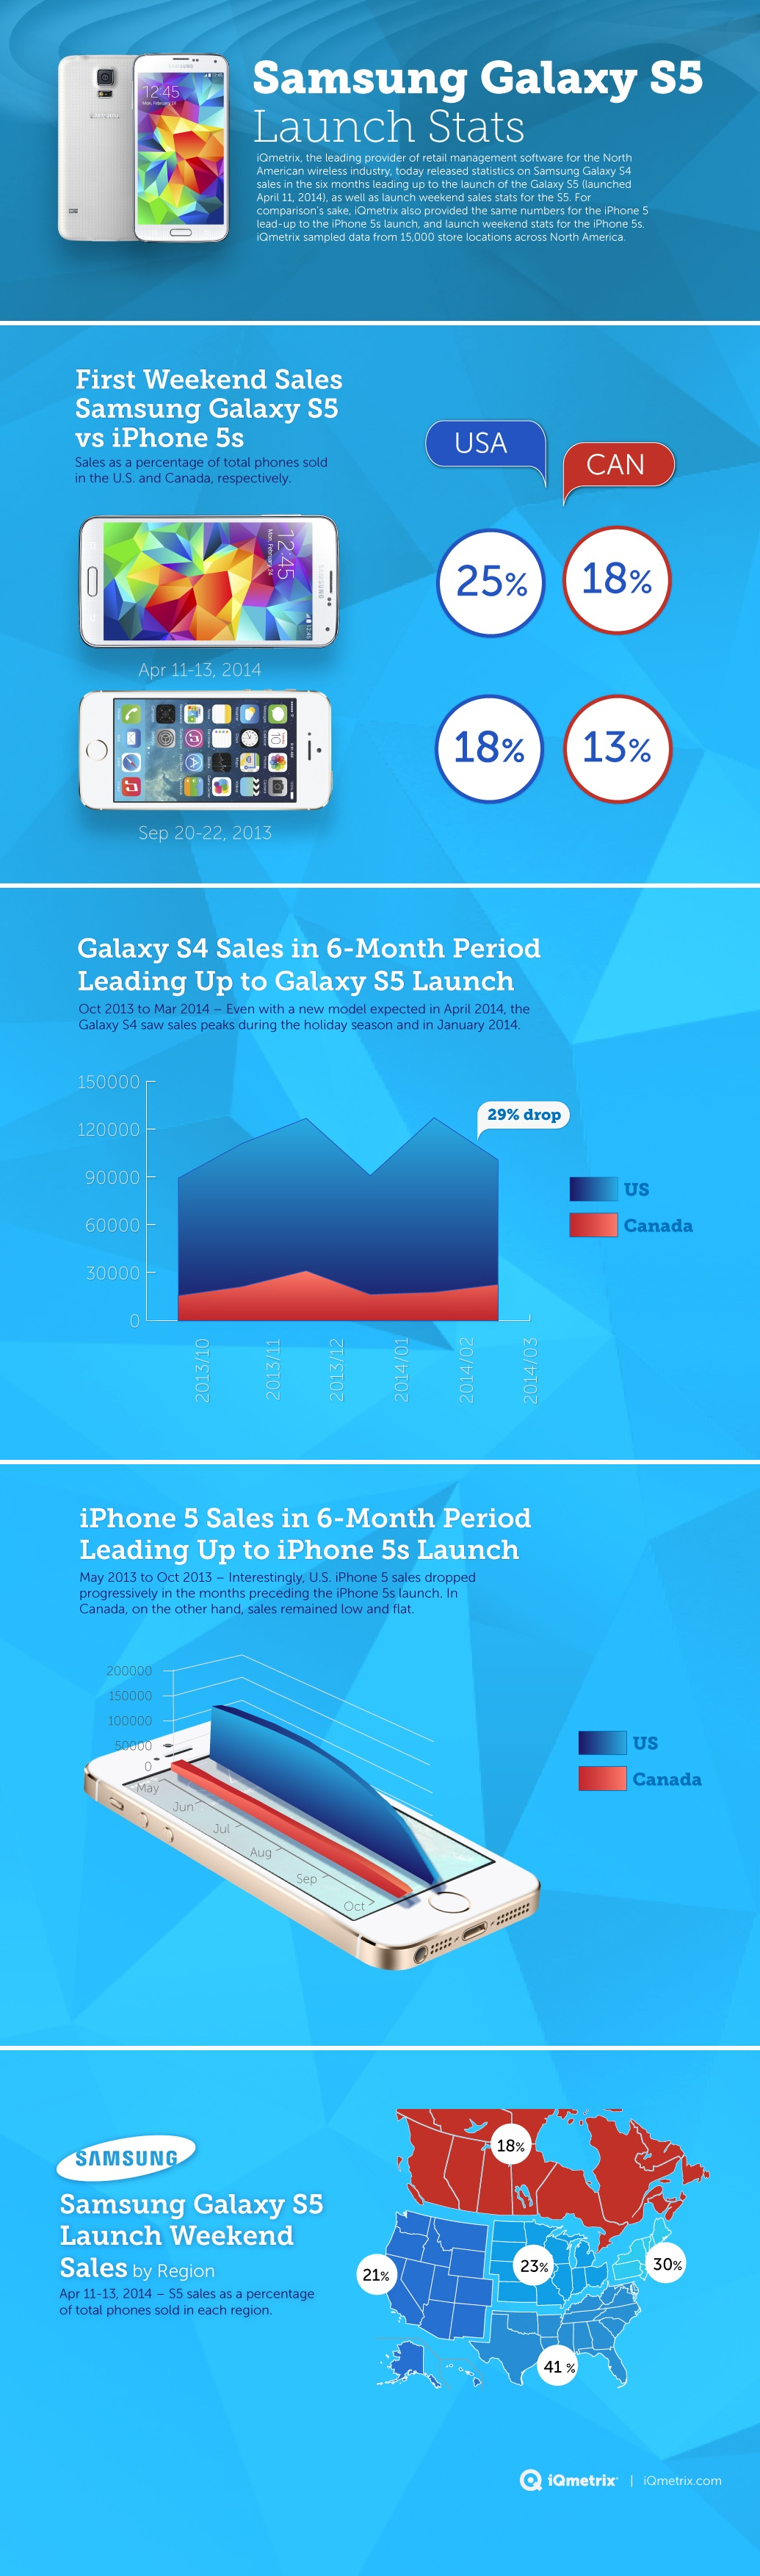 Sales_Stats_for_Galaxy_S5_Launch_Weekend_INFOGRAPHIC.jpg